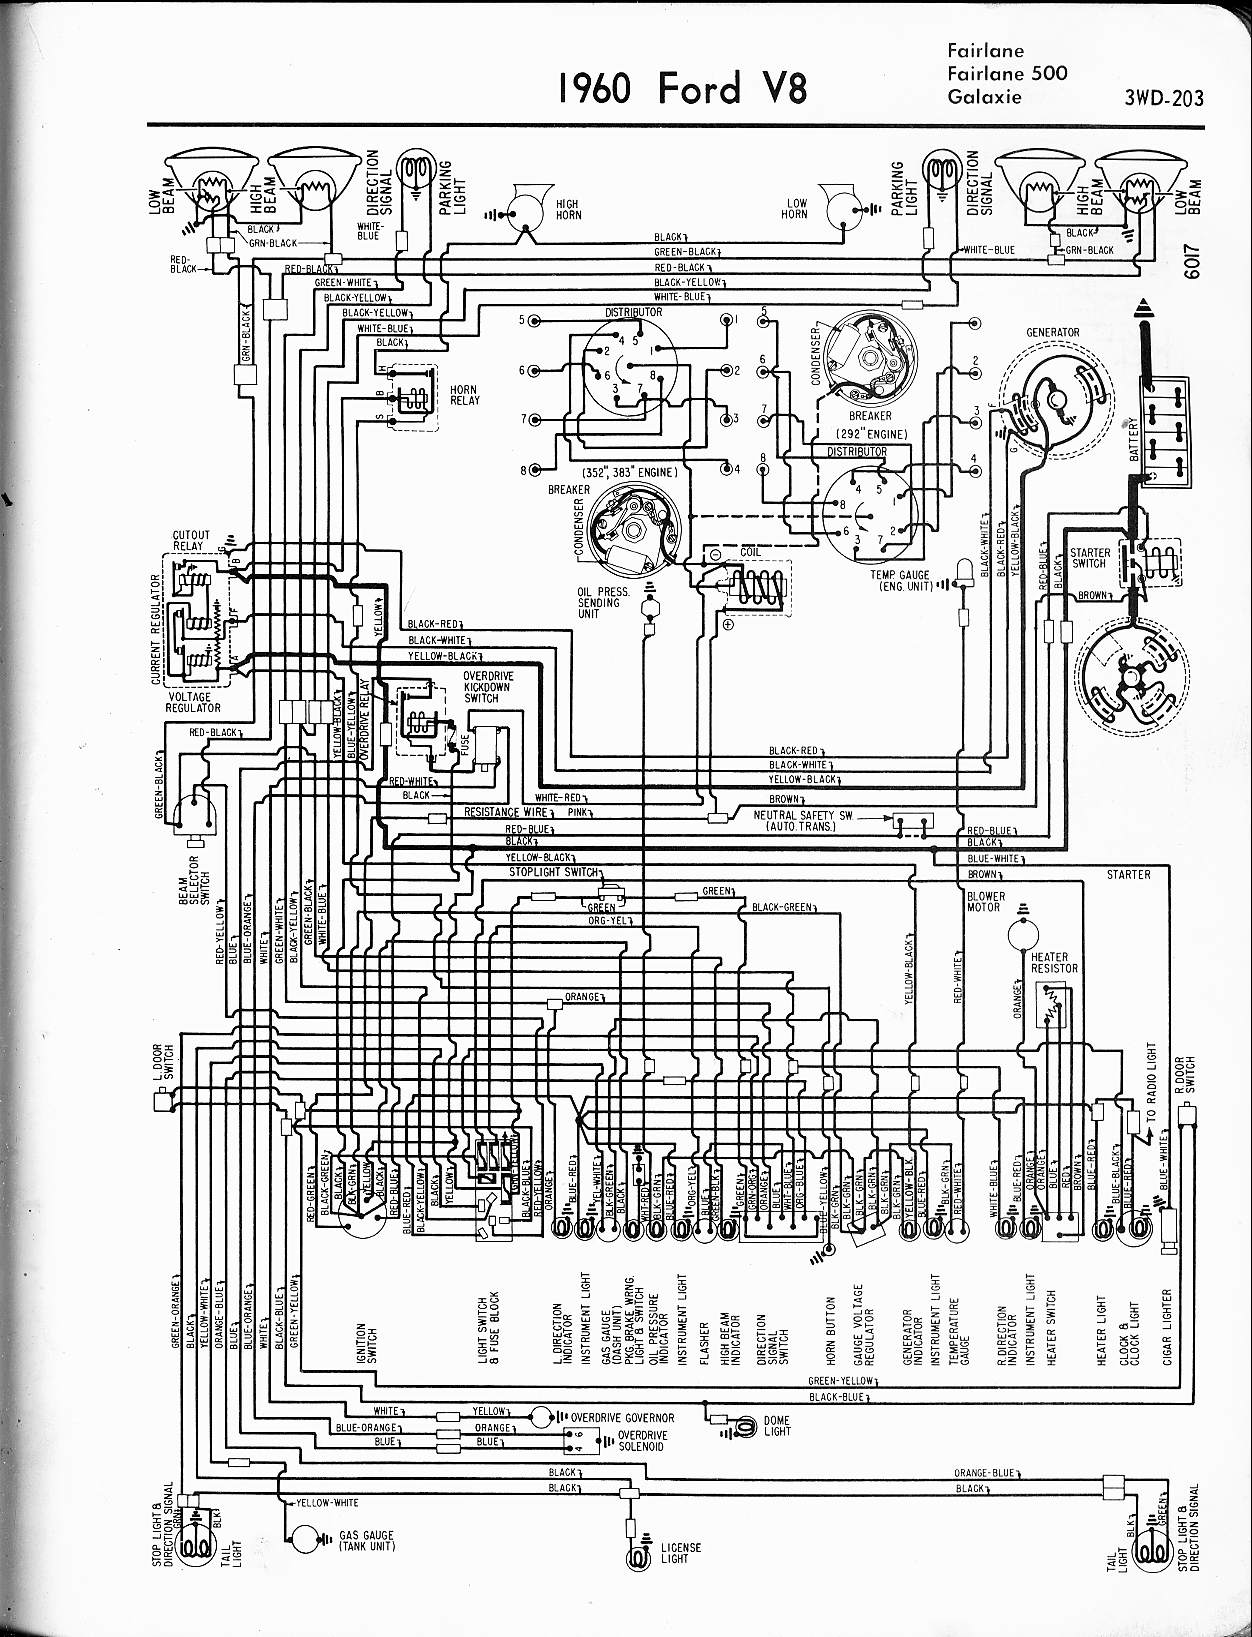 MWire5765 203 57 65 ford wiring diagrams